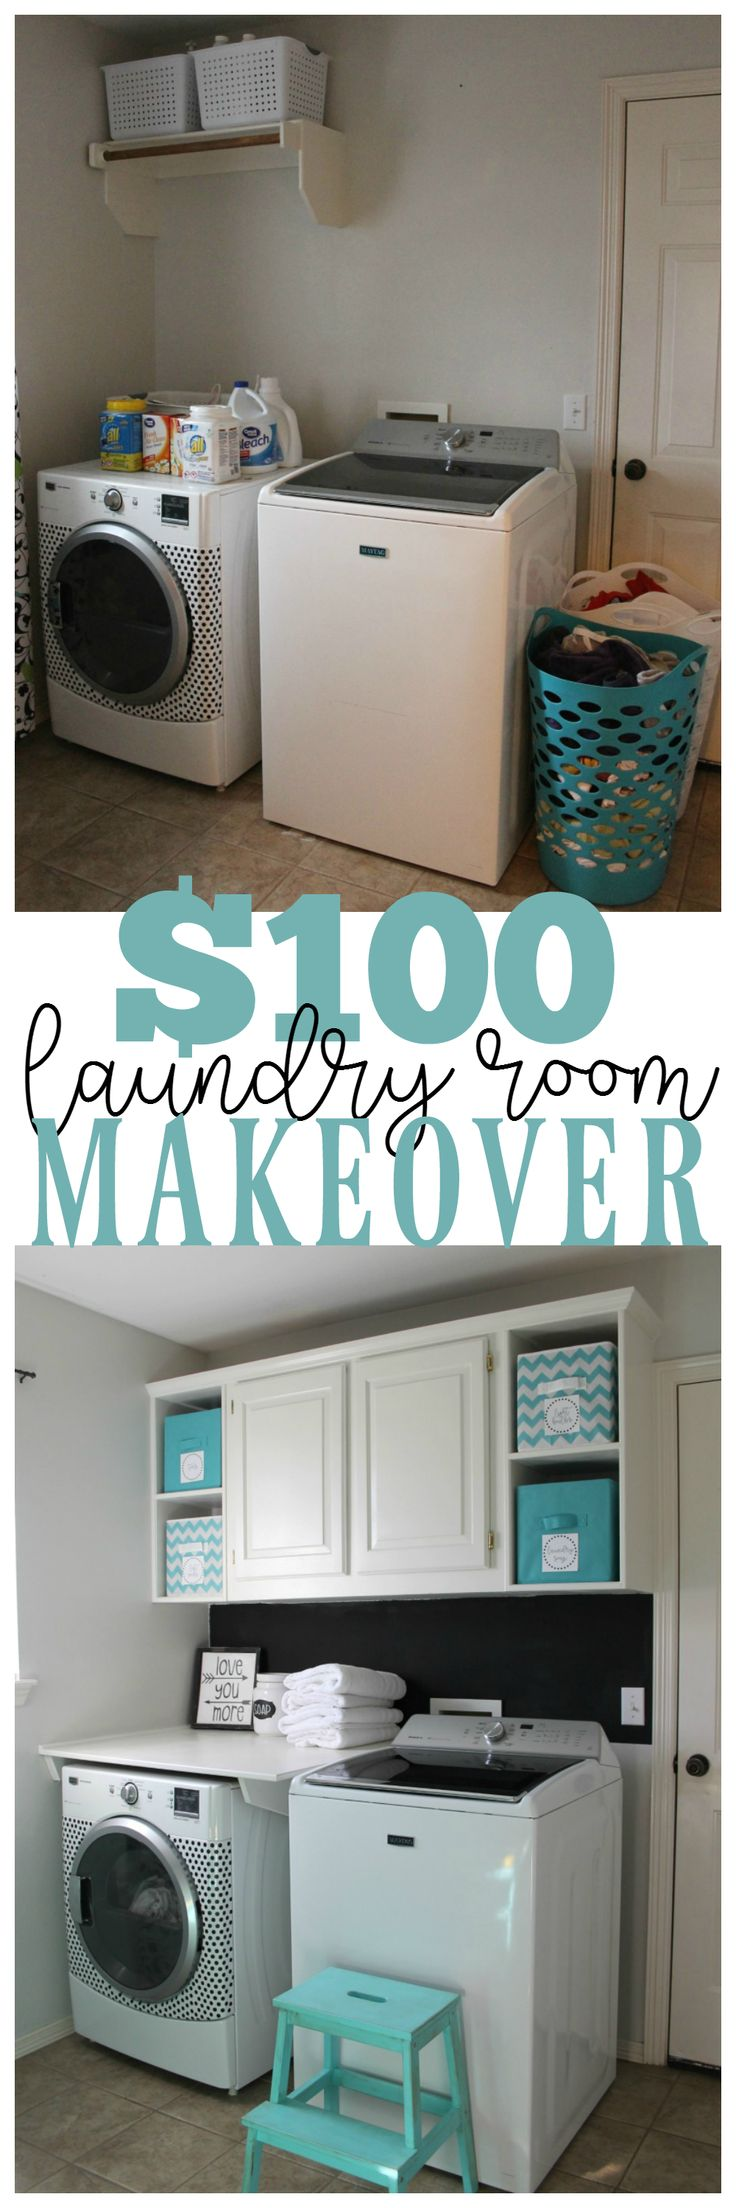 Makeover your laundry room for less than $100 and add more storage.